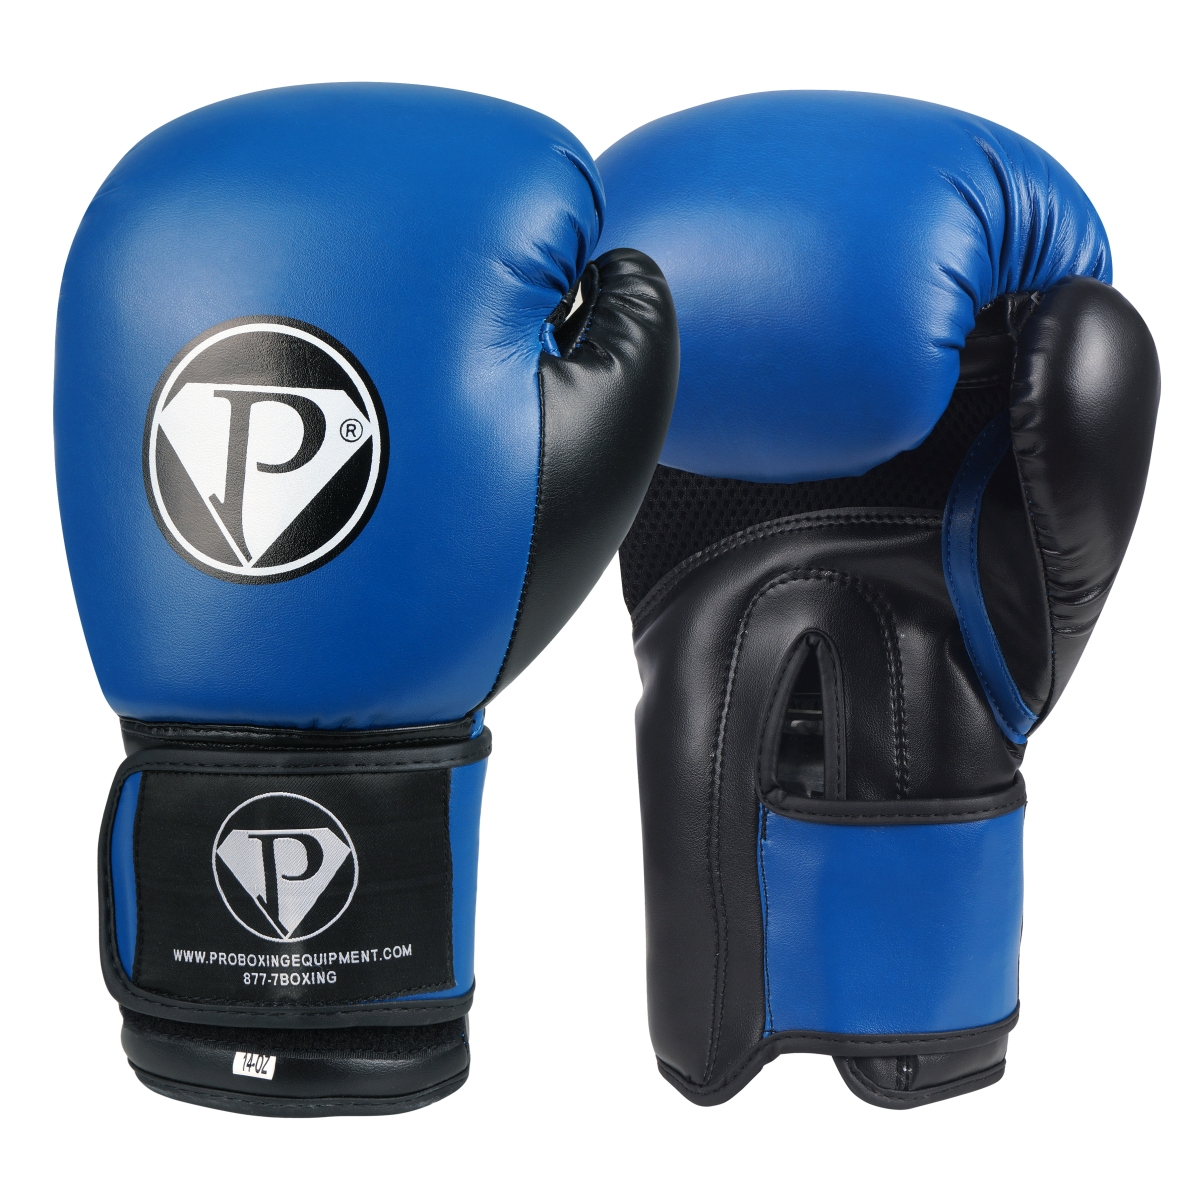 PRO Boxing Fitness Boxing Gloves